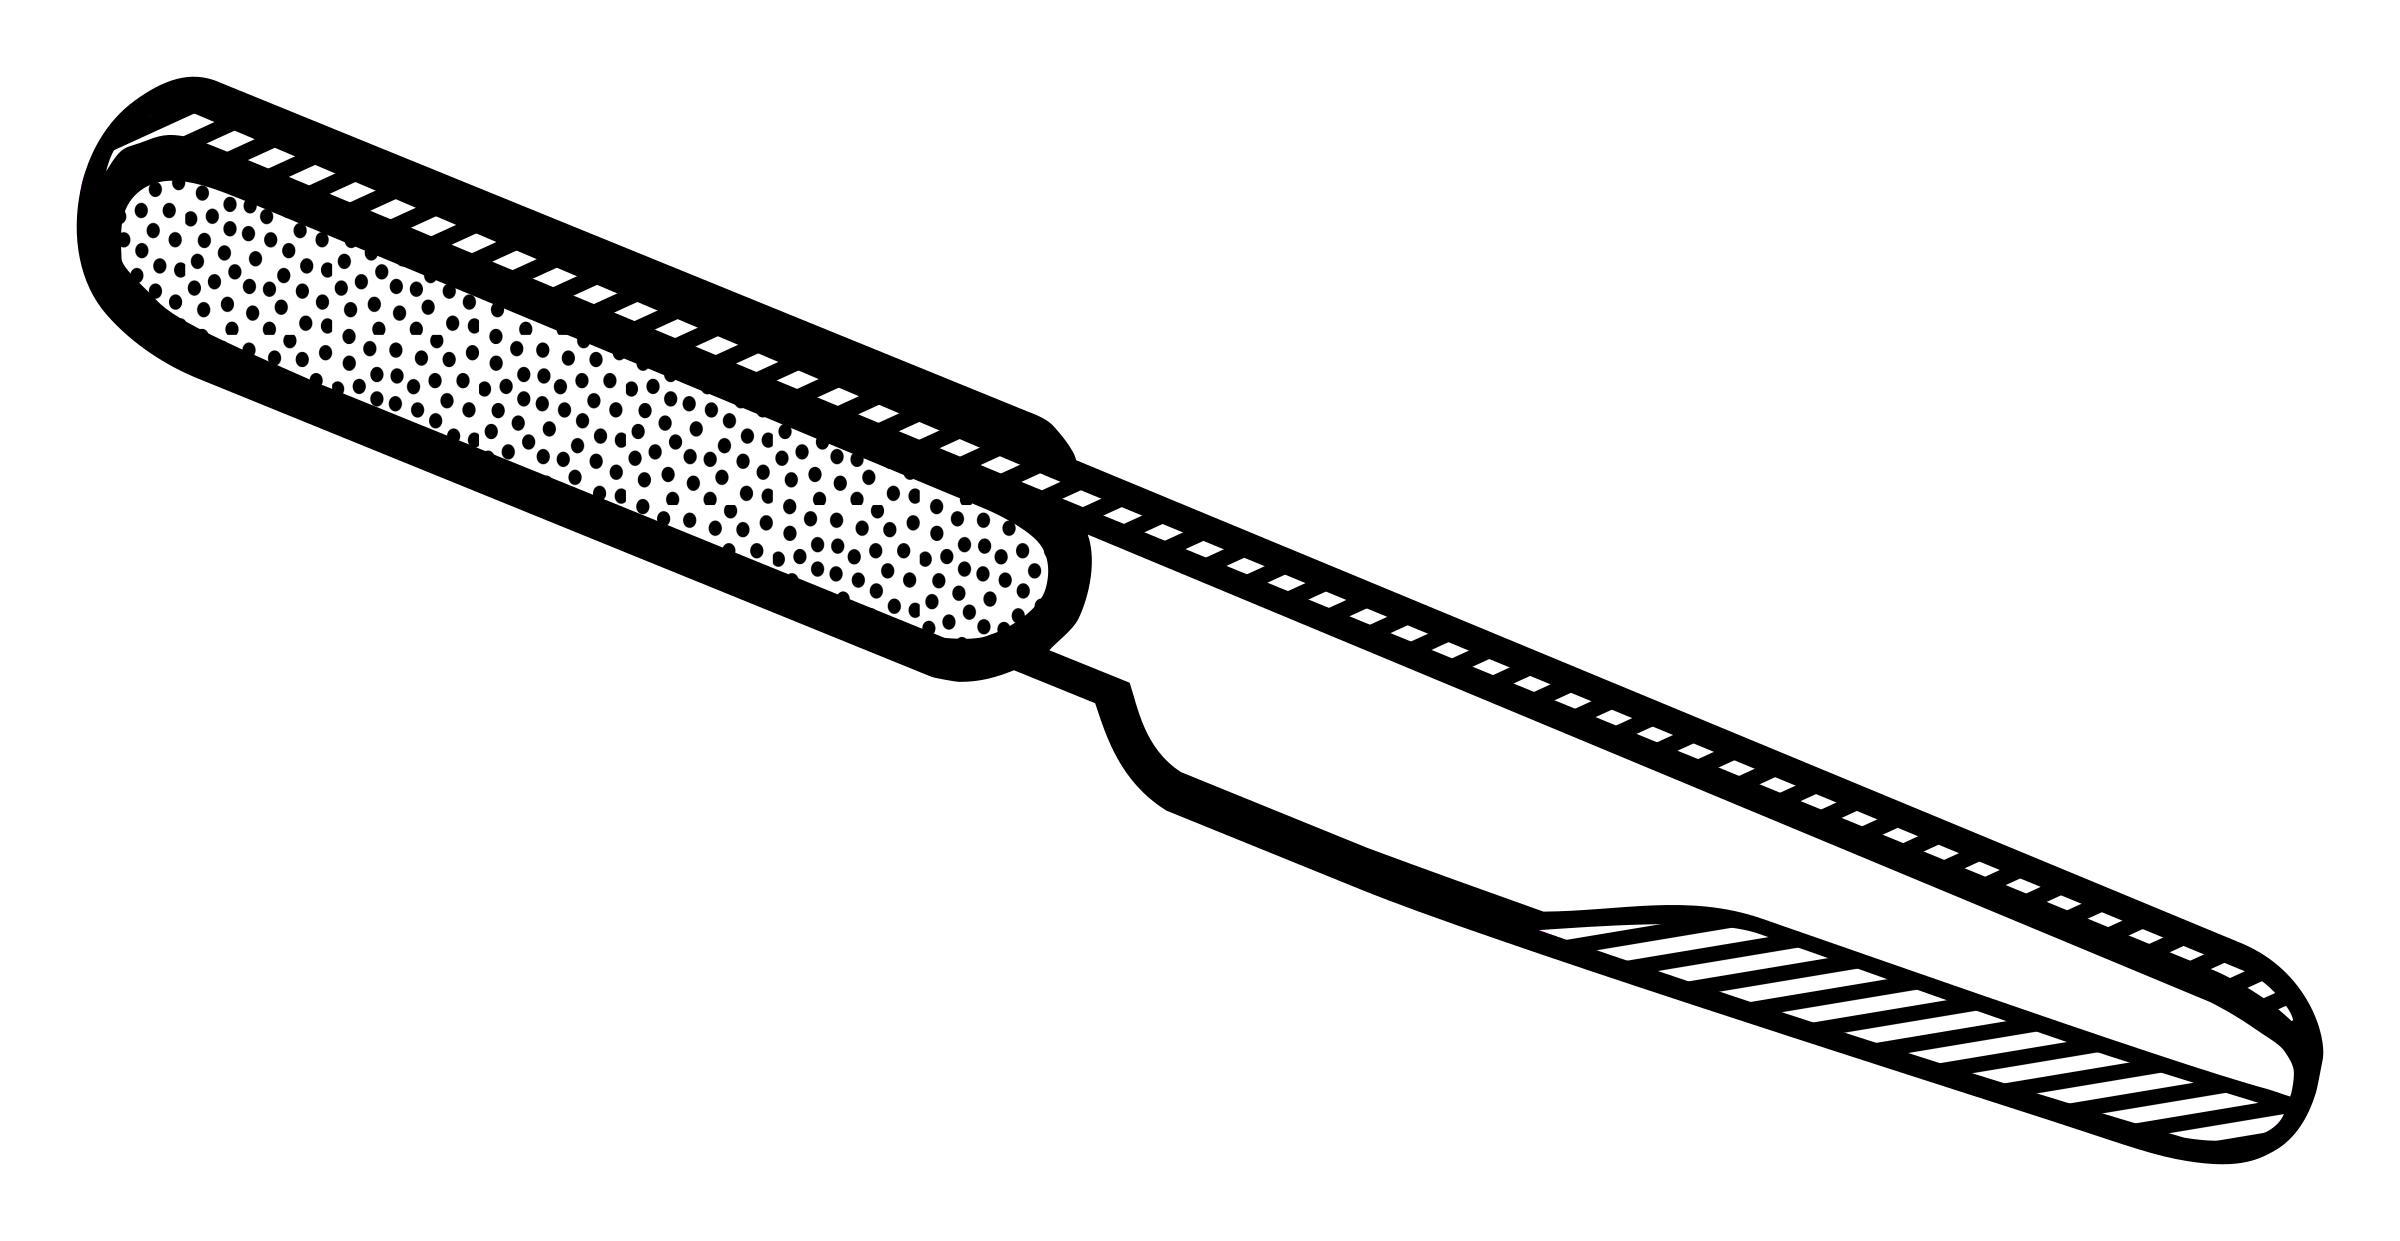 Knife clipart line art. Lineart big image png